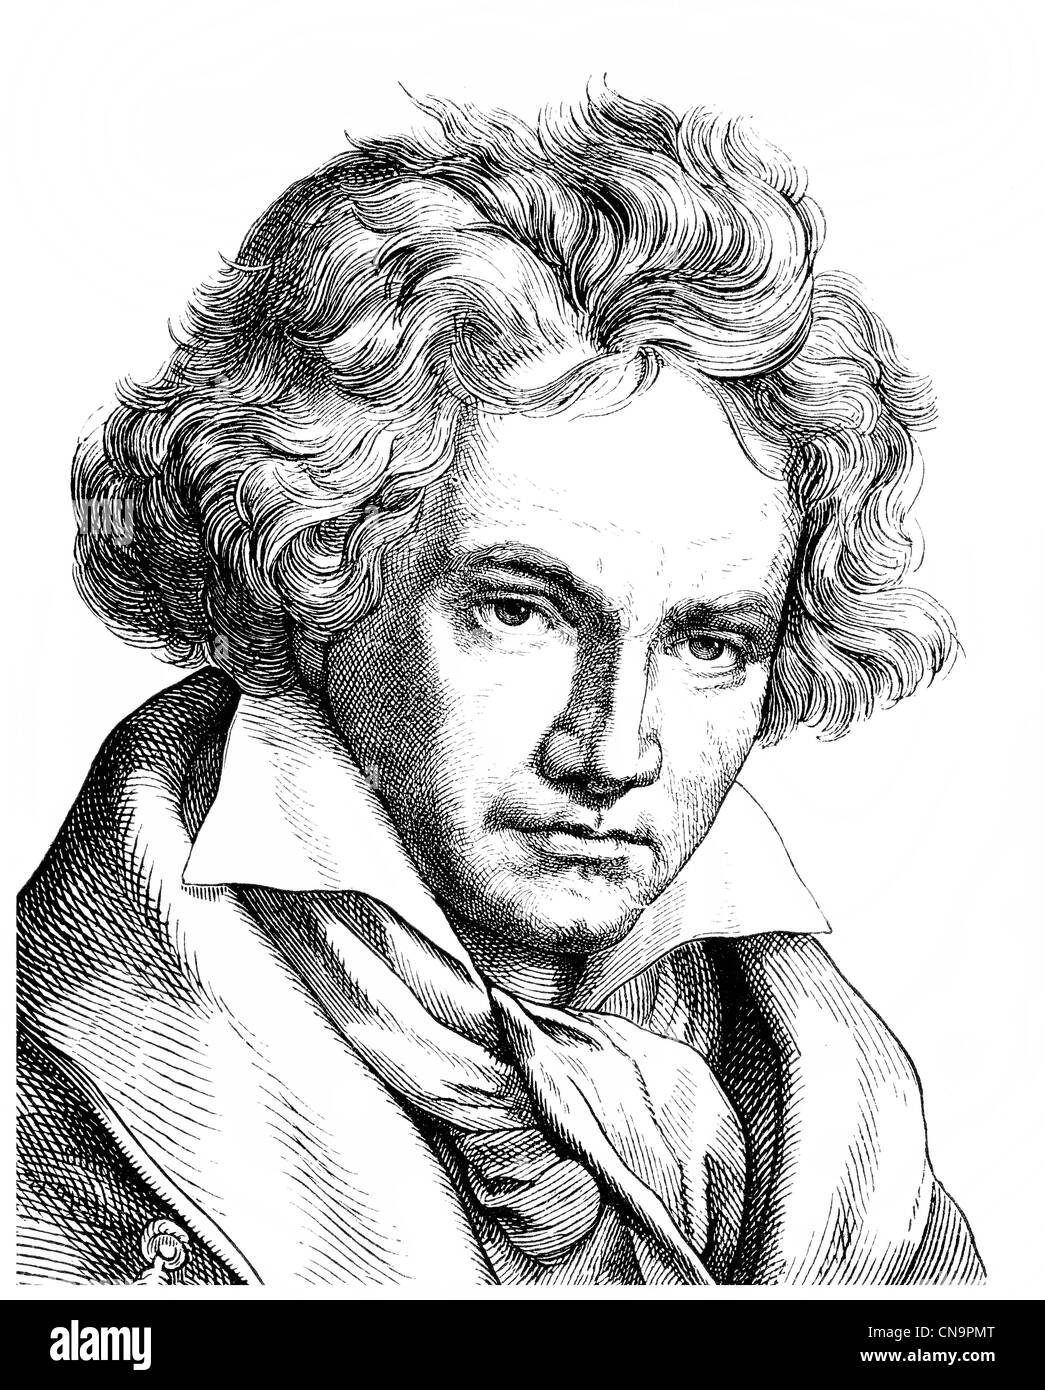 Historical drawing, 19th century, Ludwig van Beethoven, 1770 -1827, a German composer of the First Viennese School - Stock Image